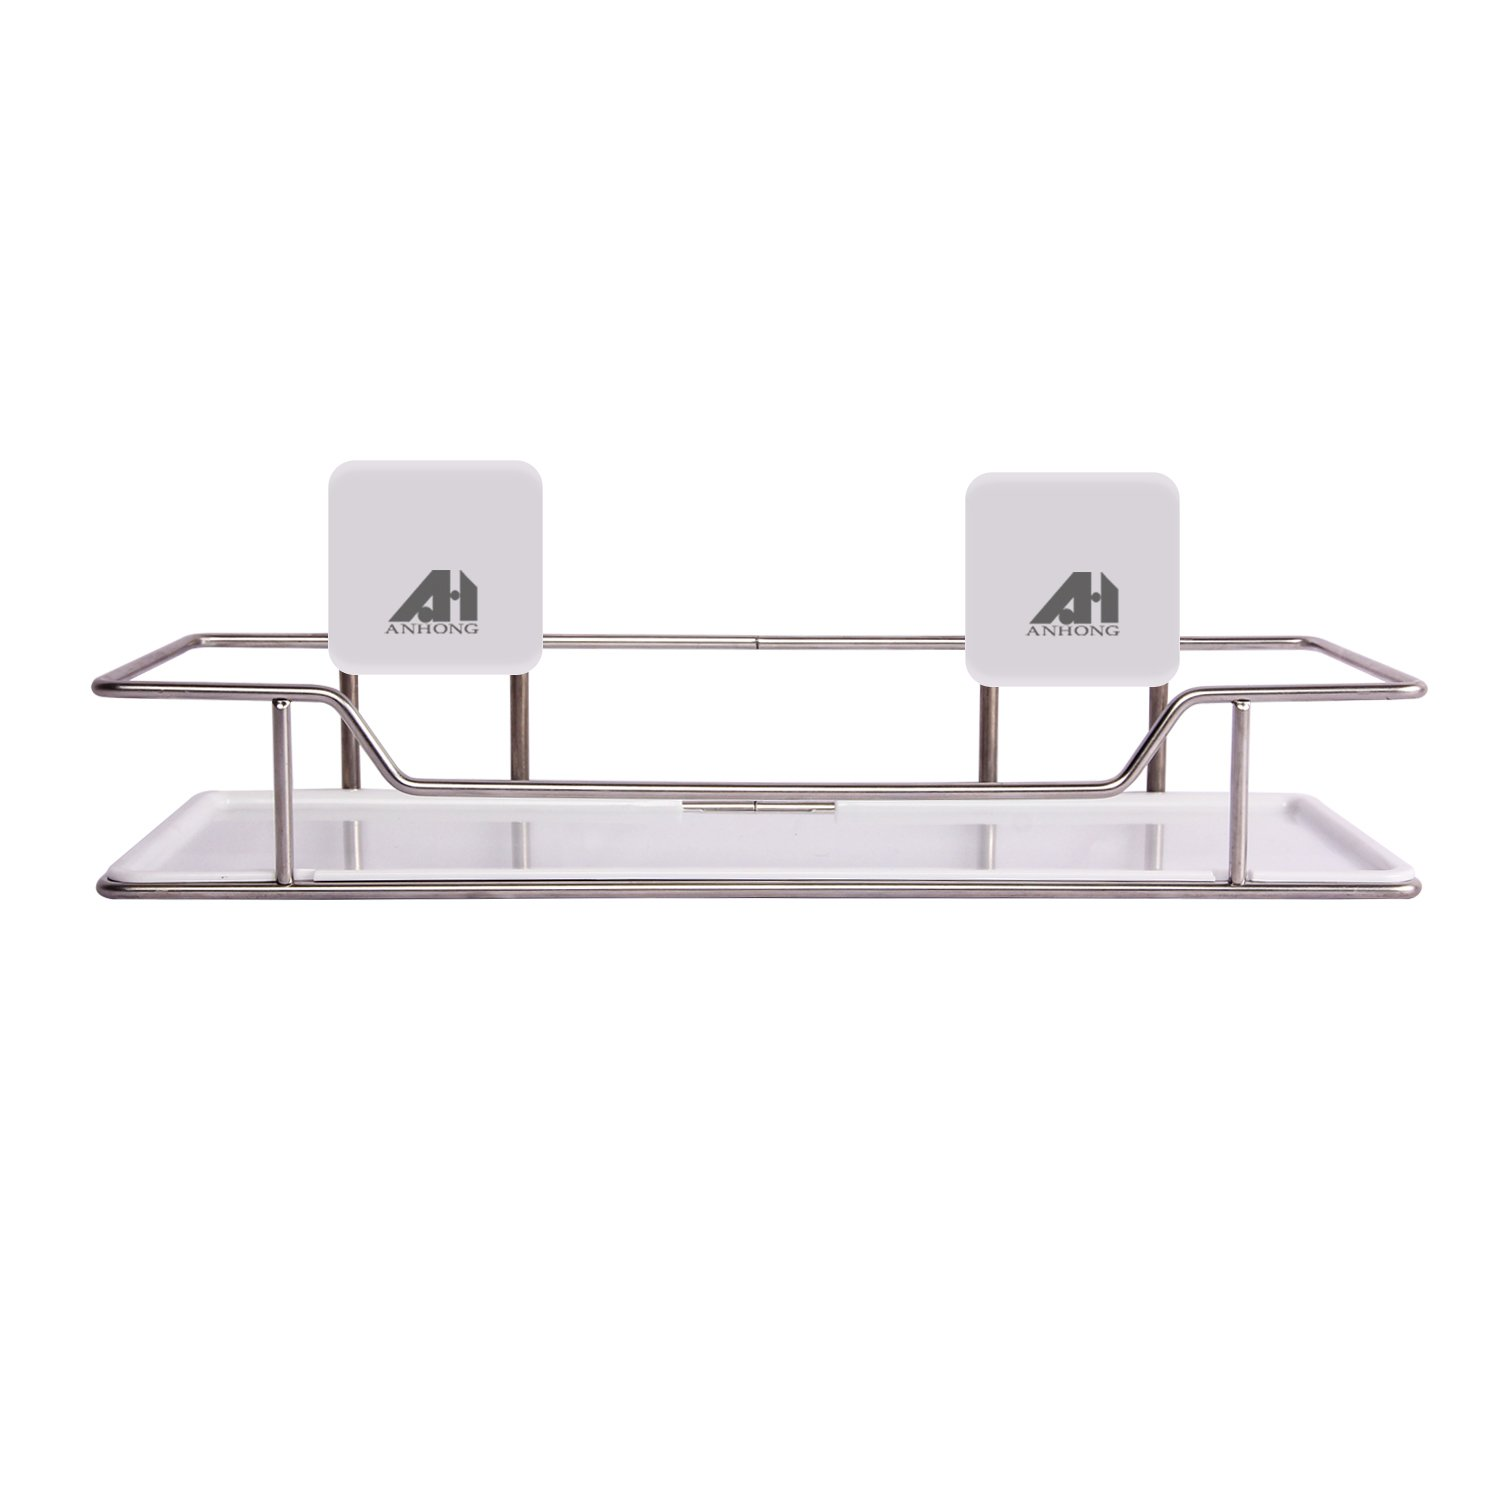 ANHONG [Nail Free] [5Kg Load Bearing] 3M Very High Bond VHB Adhesive Multi Functional Stainless Steel Bath and Kitchen Organizer Wall Mount Storage Rack Shelf with Acrylic Panel, Chrome